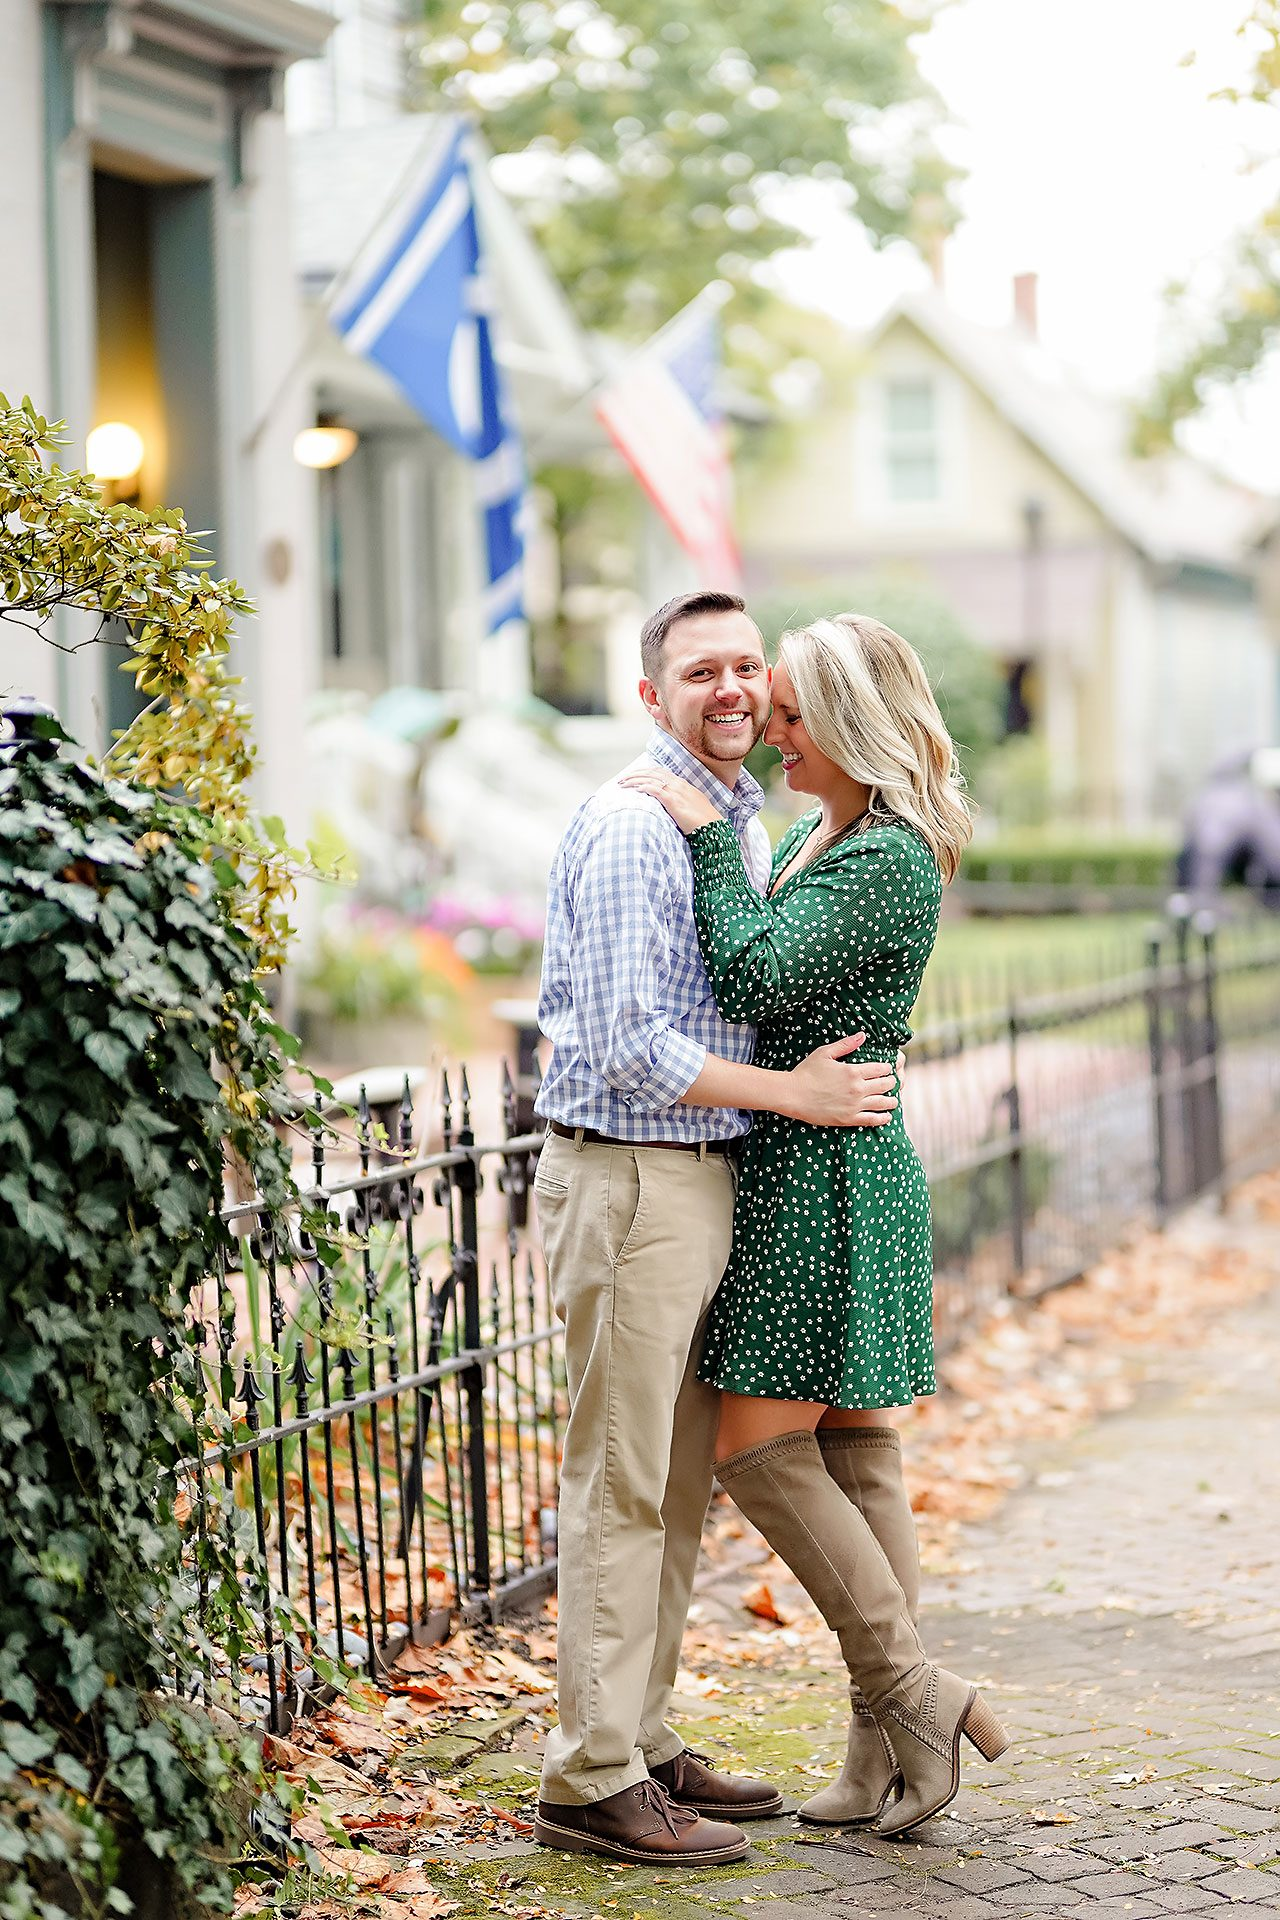 Kristen Jonny Indianapolis Downtown Engagement Session 074